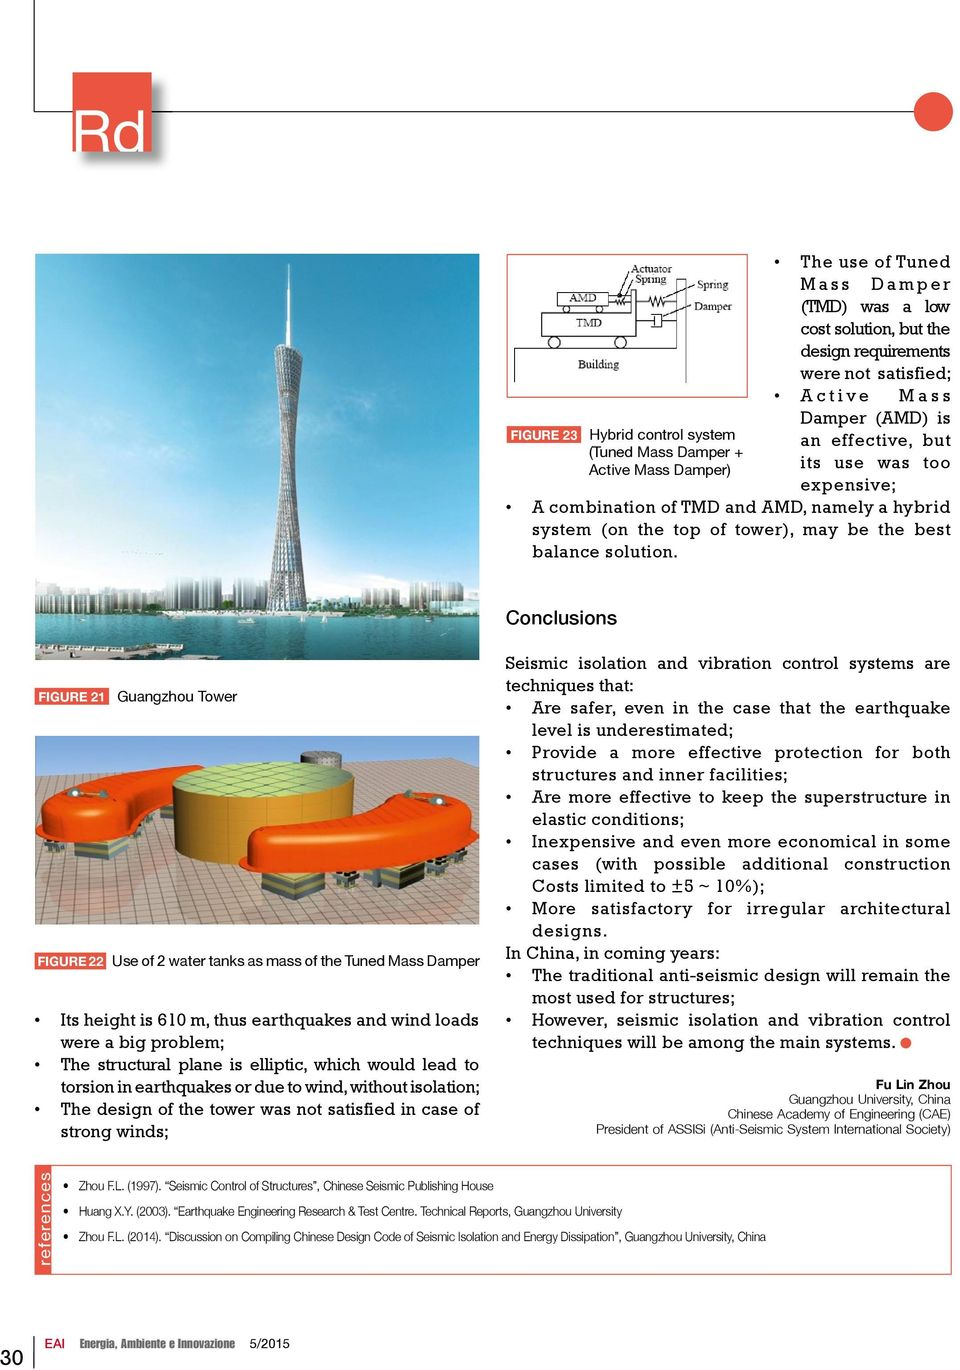 Conclusions FIGURE 21 Guangzhou Tower FIGURE 22 Use of 2 water tanks as mass of the Tuned Mass Damper Its height is 610 m, thus earthquakes and wind loads were a big problem; The structural plane is